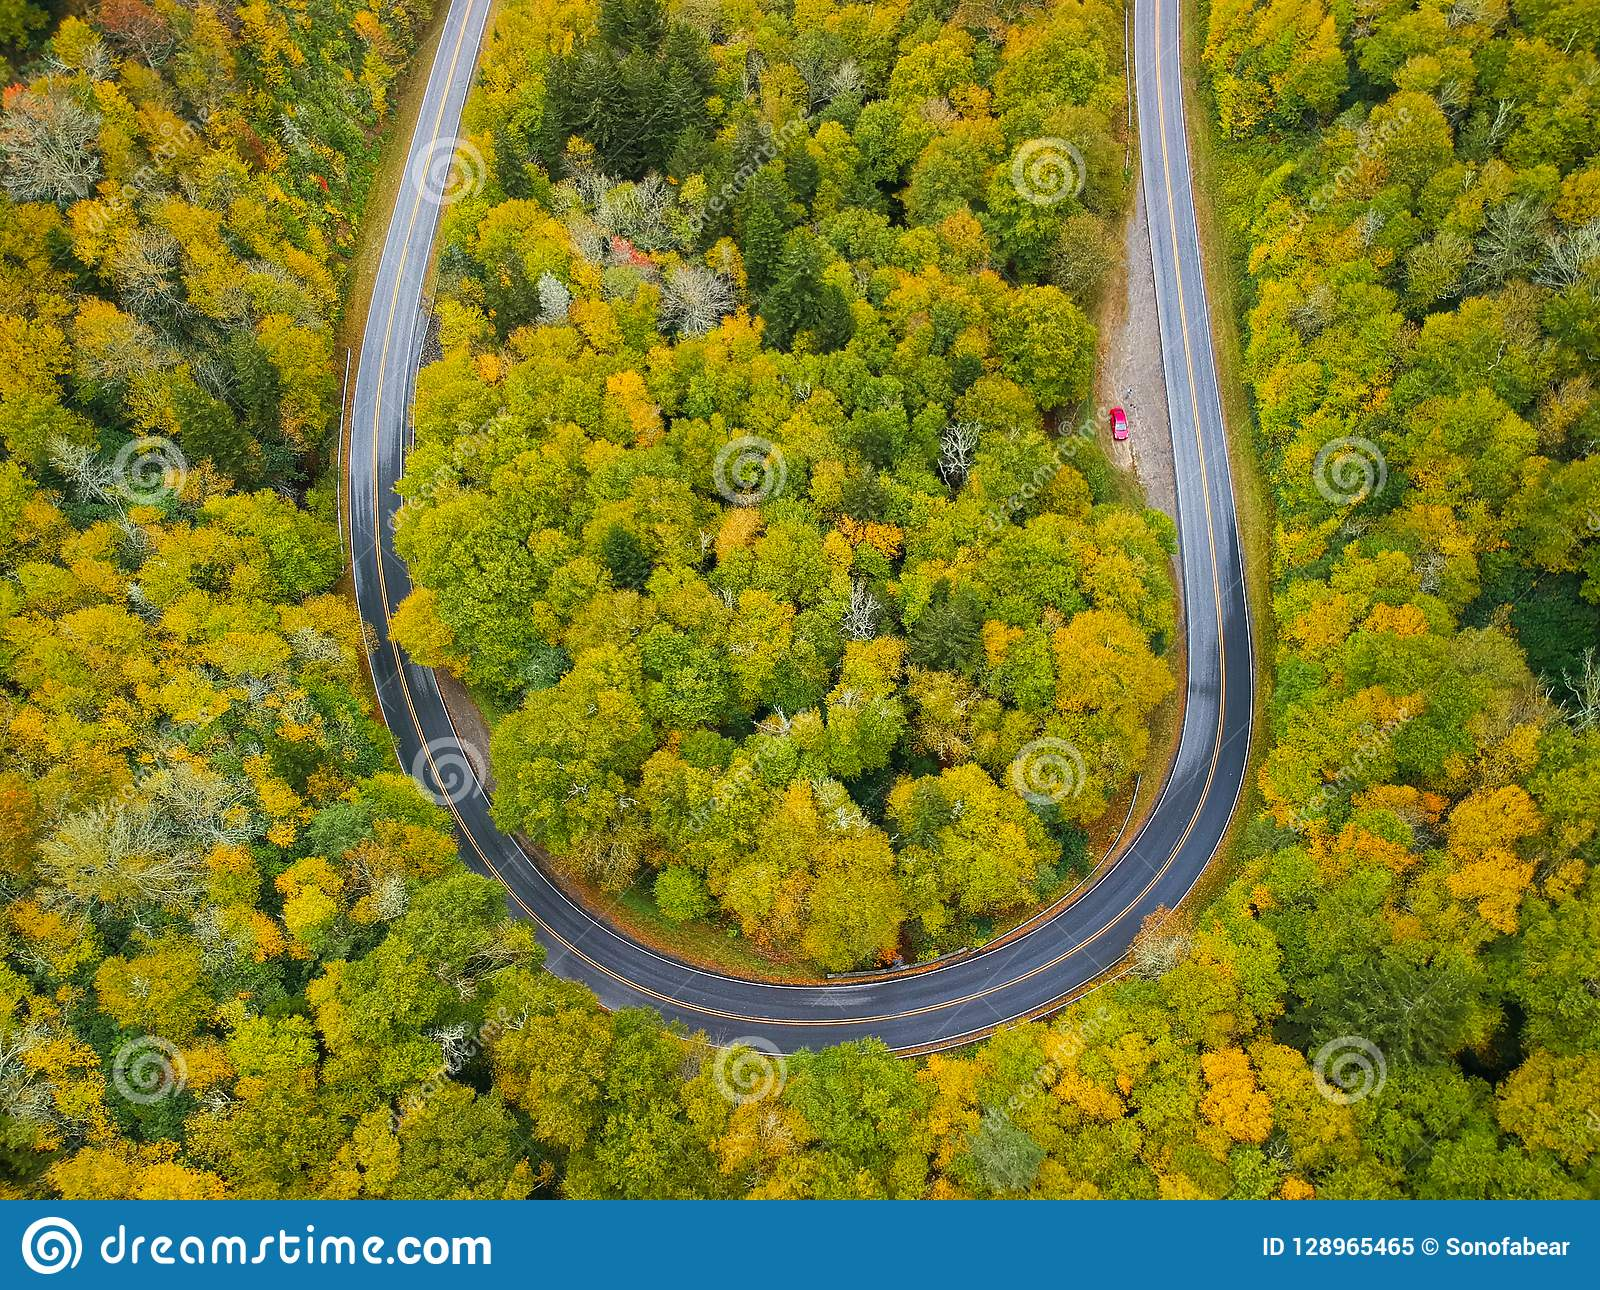 Aerial drone view of U Turn Road Curve in Autumn / Fall foliage overhead. Blue Ridge in the Appalachian Mountains near Asheville,